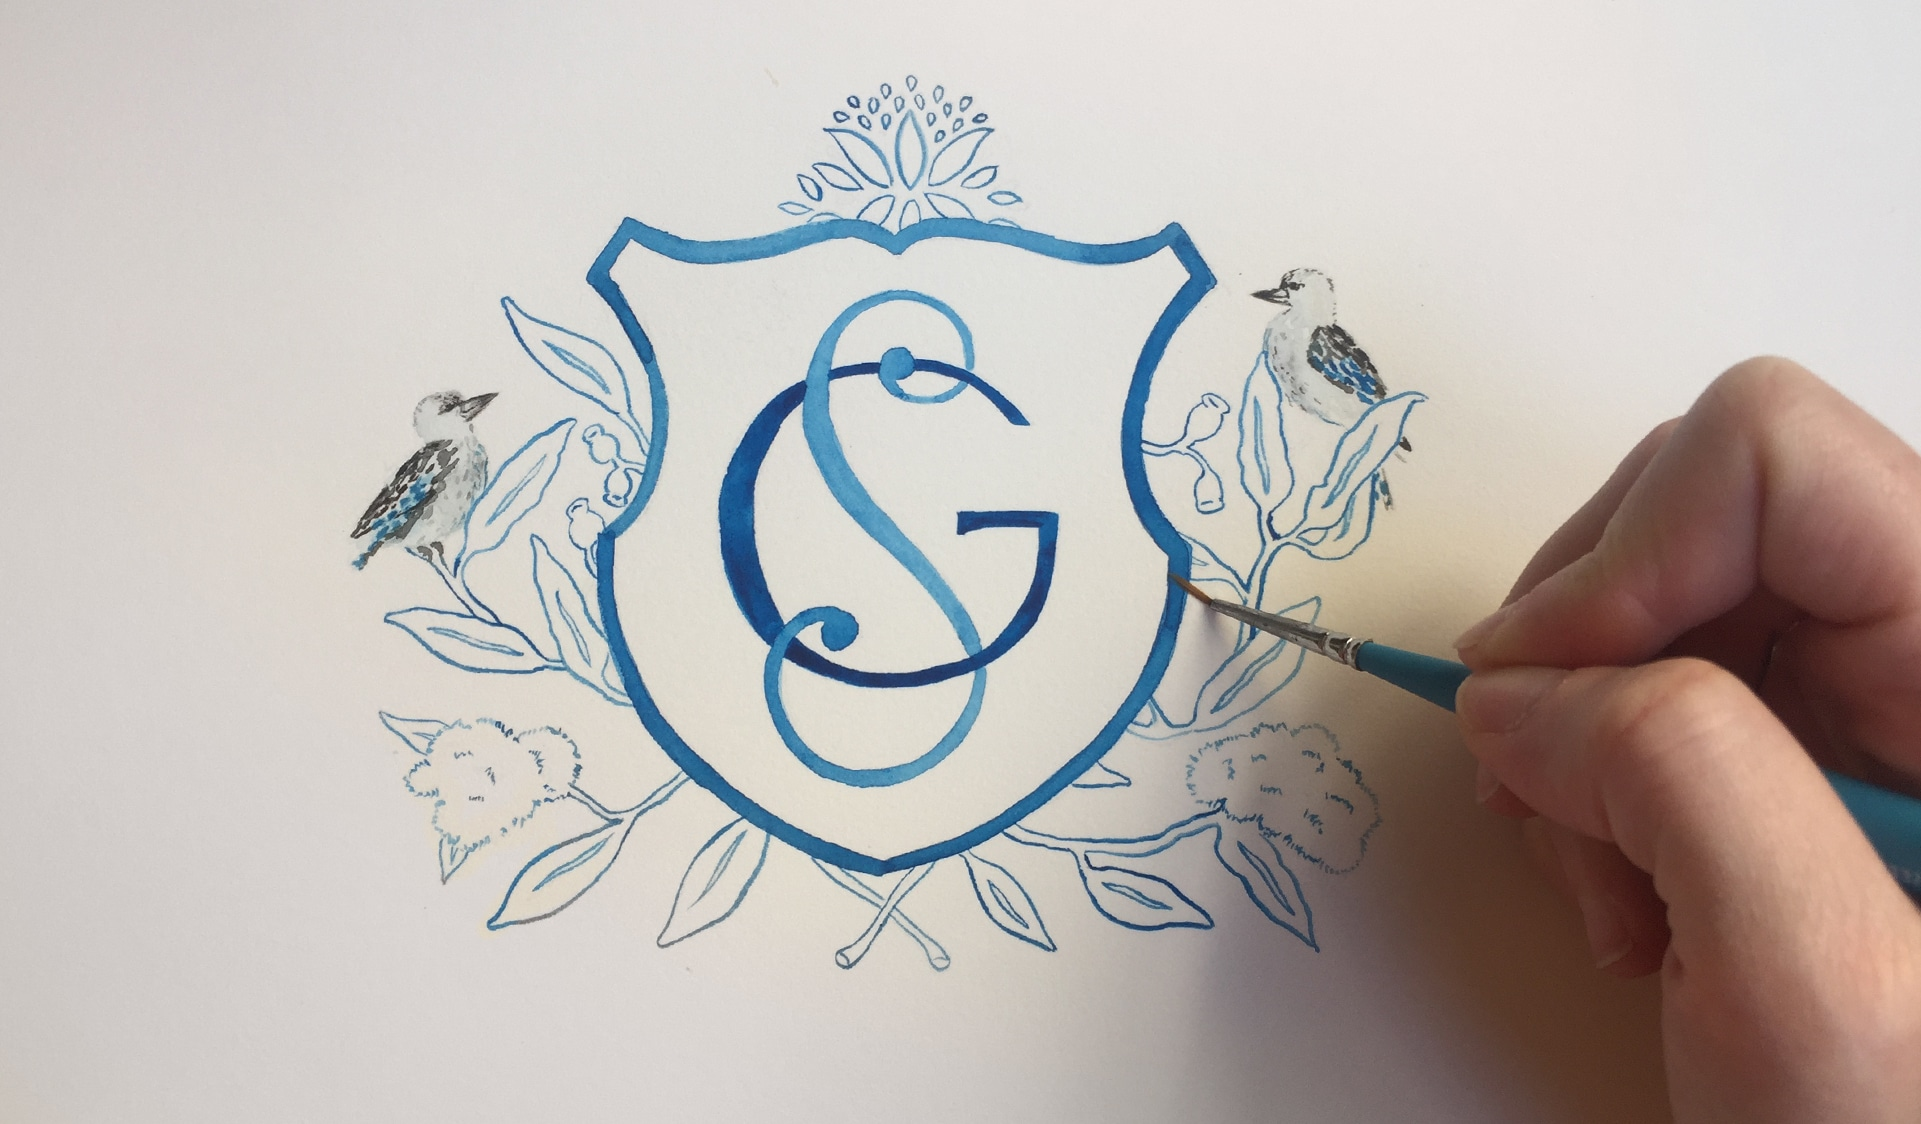 Watercolor painting of crest and monogram